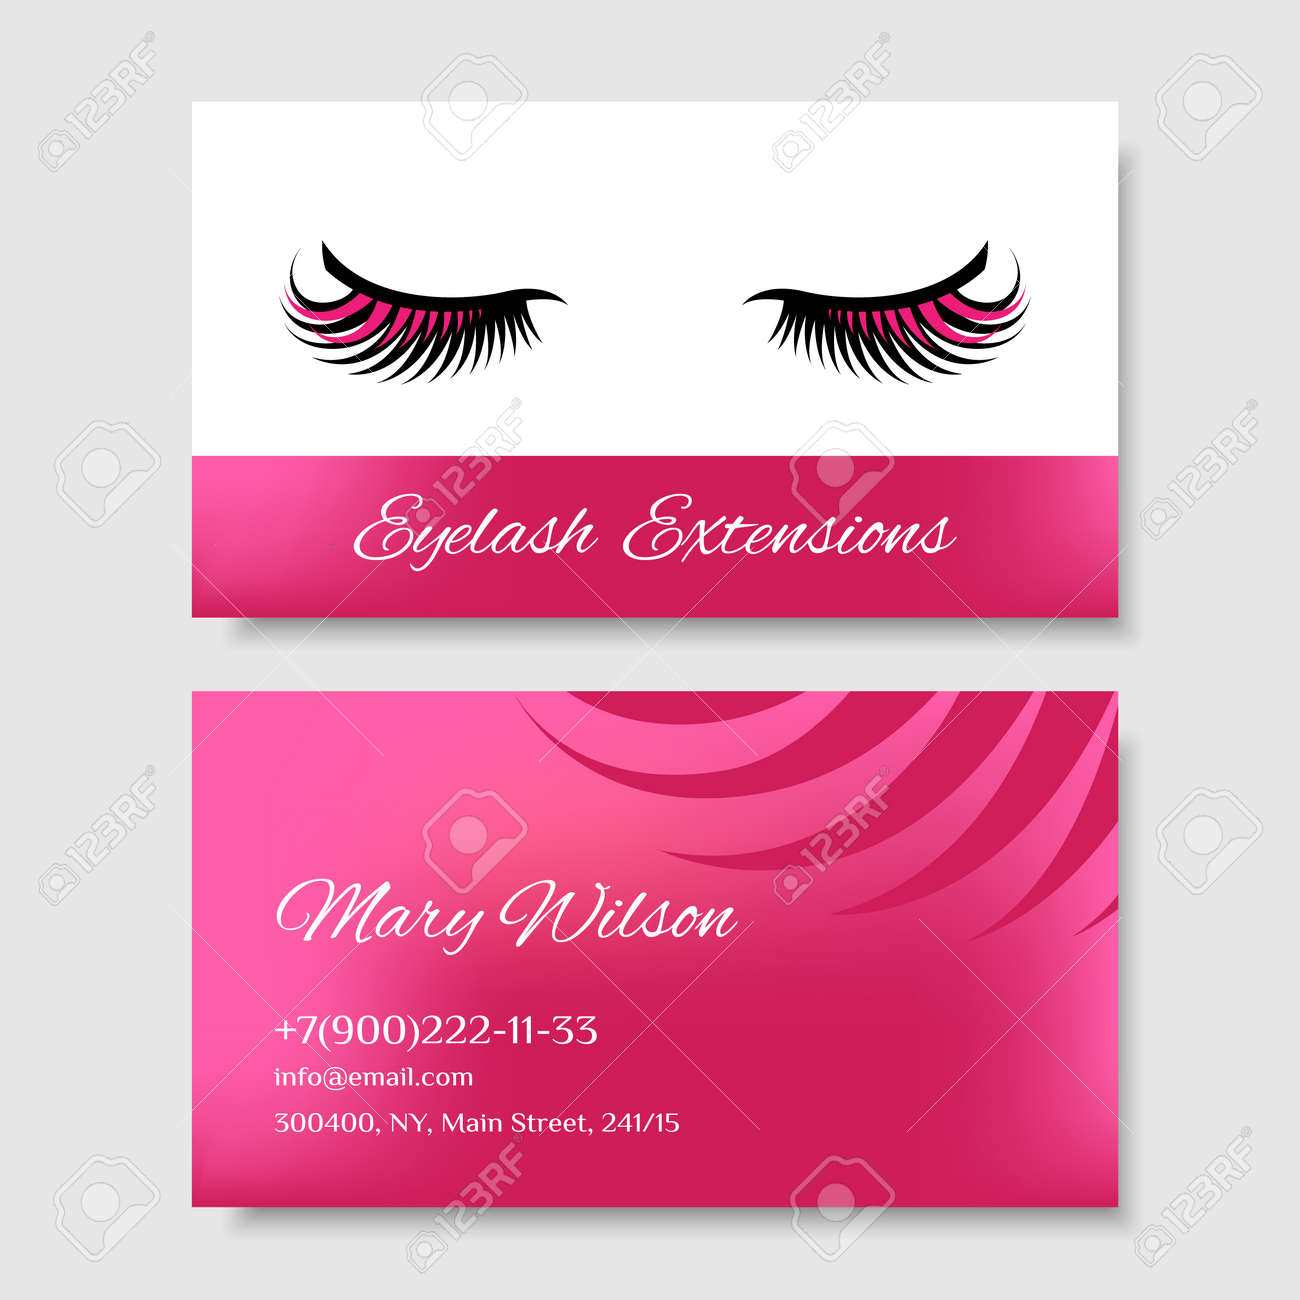 Branding For Salon Eyelash Extension Shop Cosmetic Products